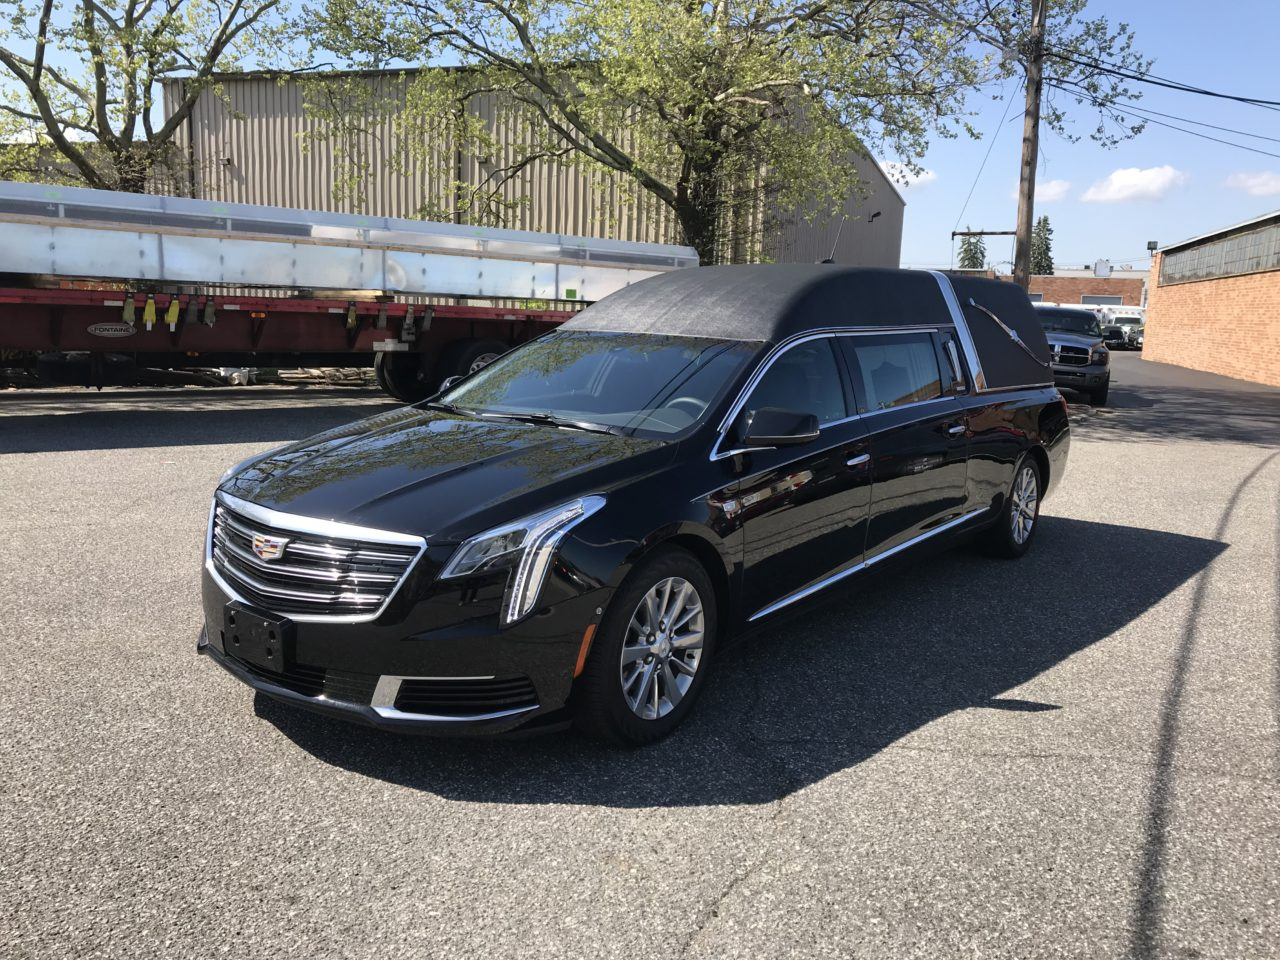 2019 CADILLAC FEDERAL HERITAGE FUNERAL HEARSE - Specialty ...